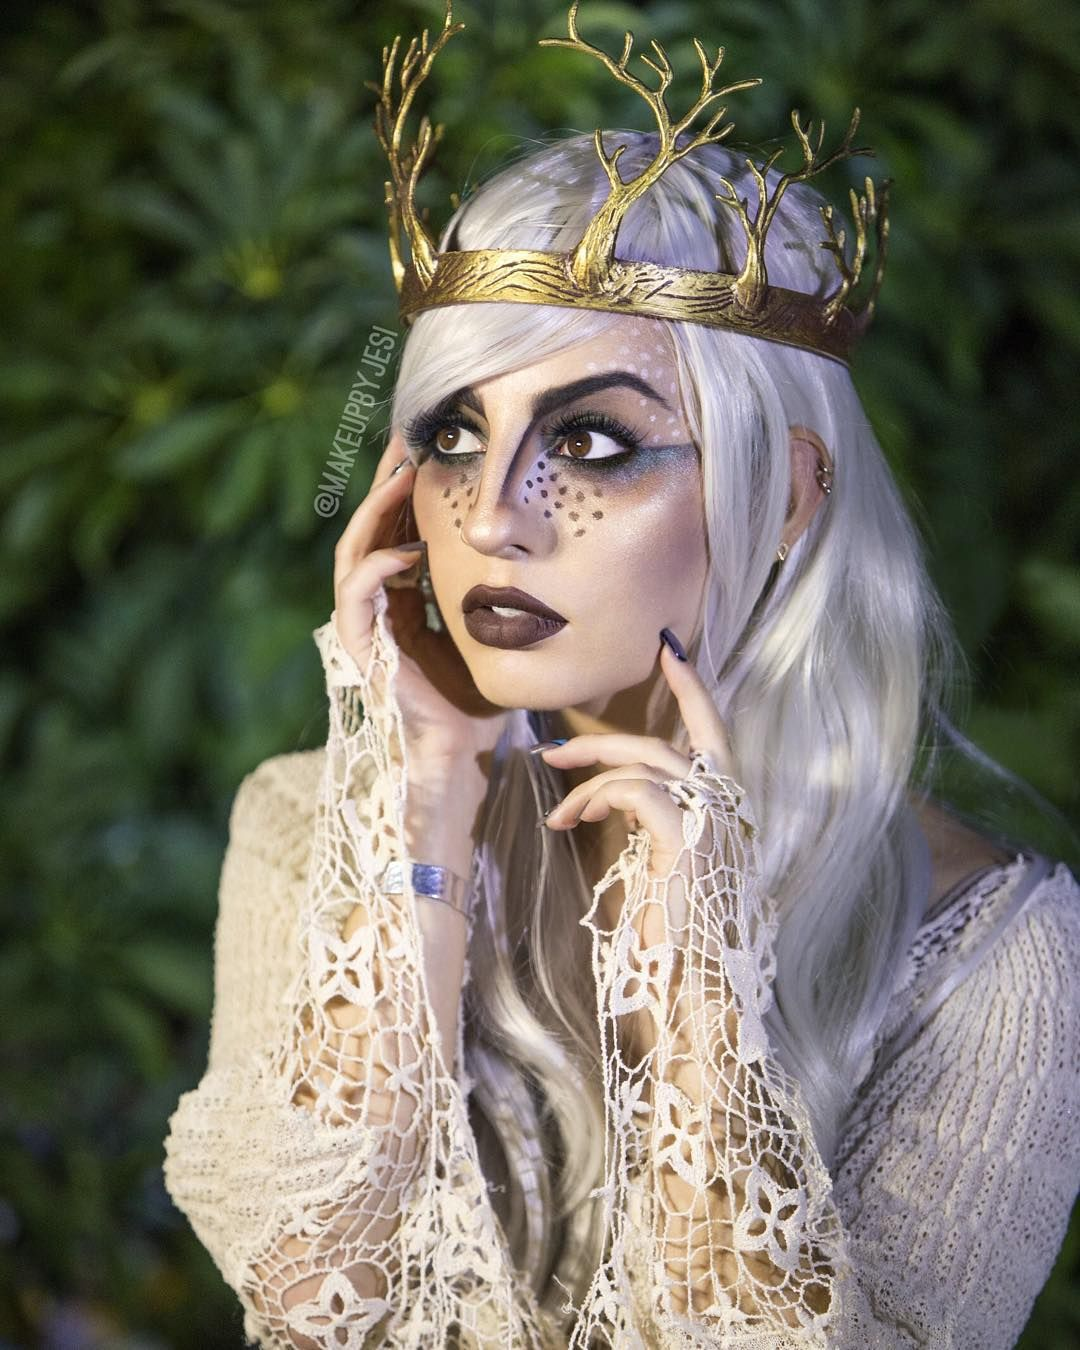 J E S I M U A On Instagram Tutorial On This Woodland Fairy Look Is Now Live On Youtube Com Mesije Woodland Fairy Makeup Fairy Makeup Woodland Fairy Costume